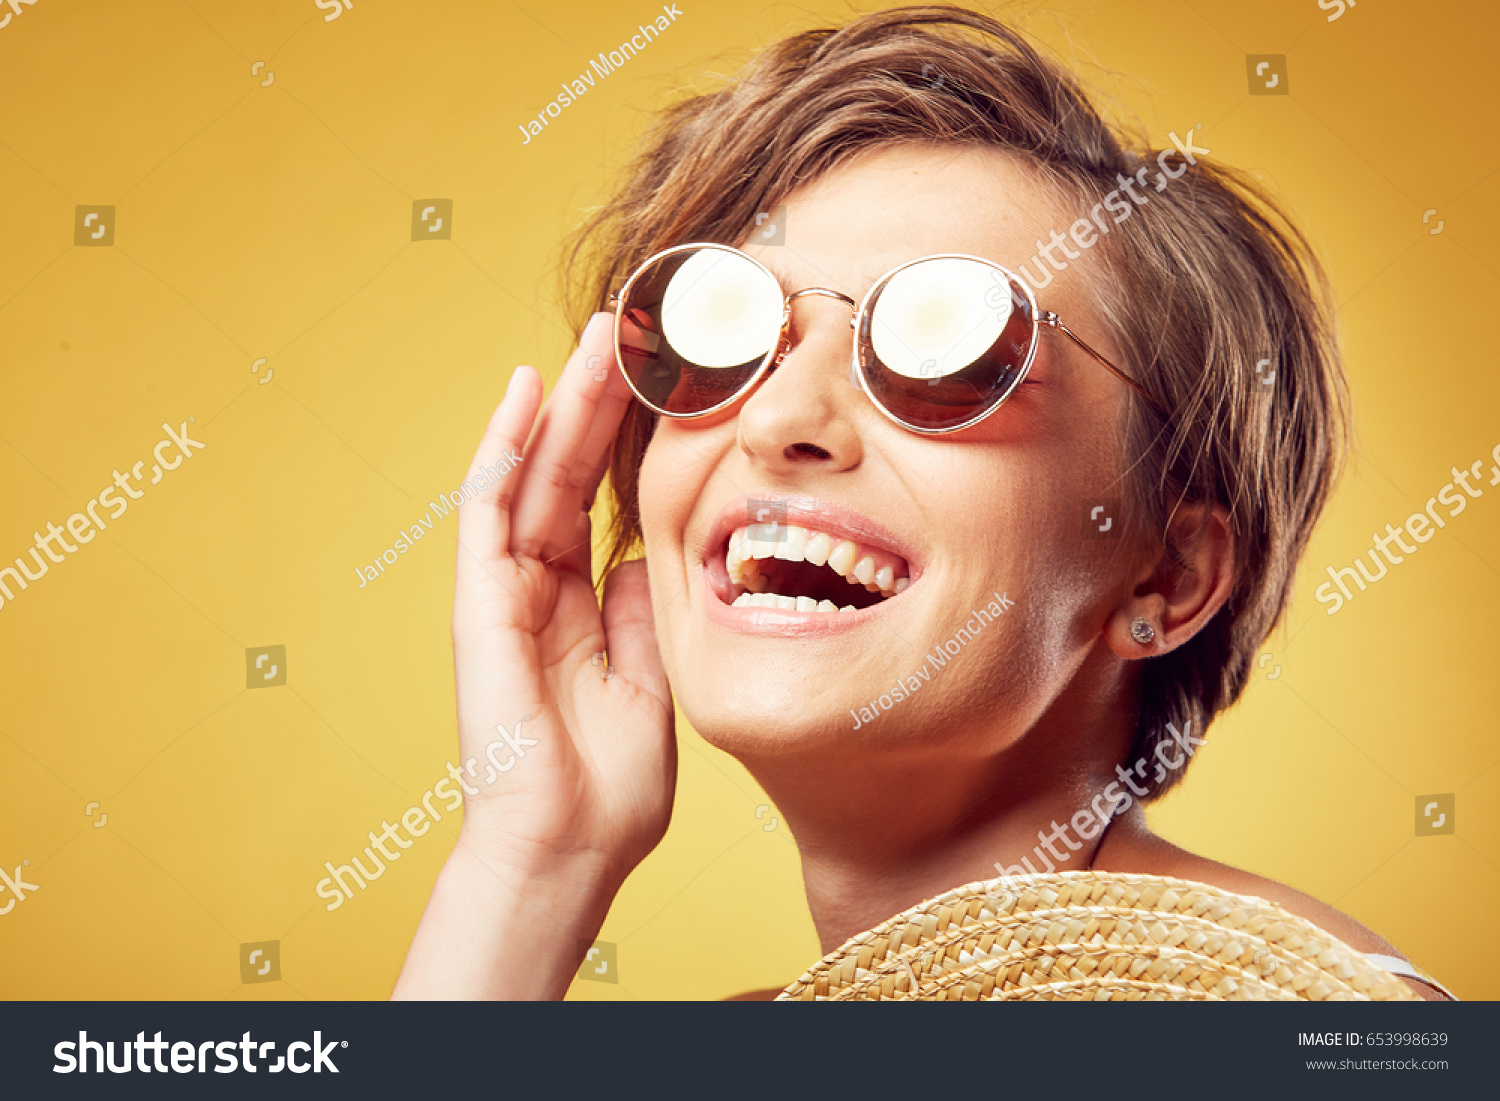 c332a4ddb576 Closeup portrait of sexy young pretty woman with short disheveled brown  hair and sunglasses looking up